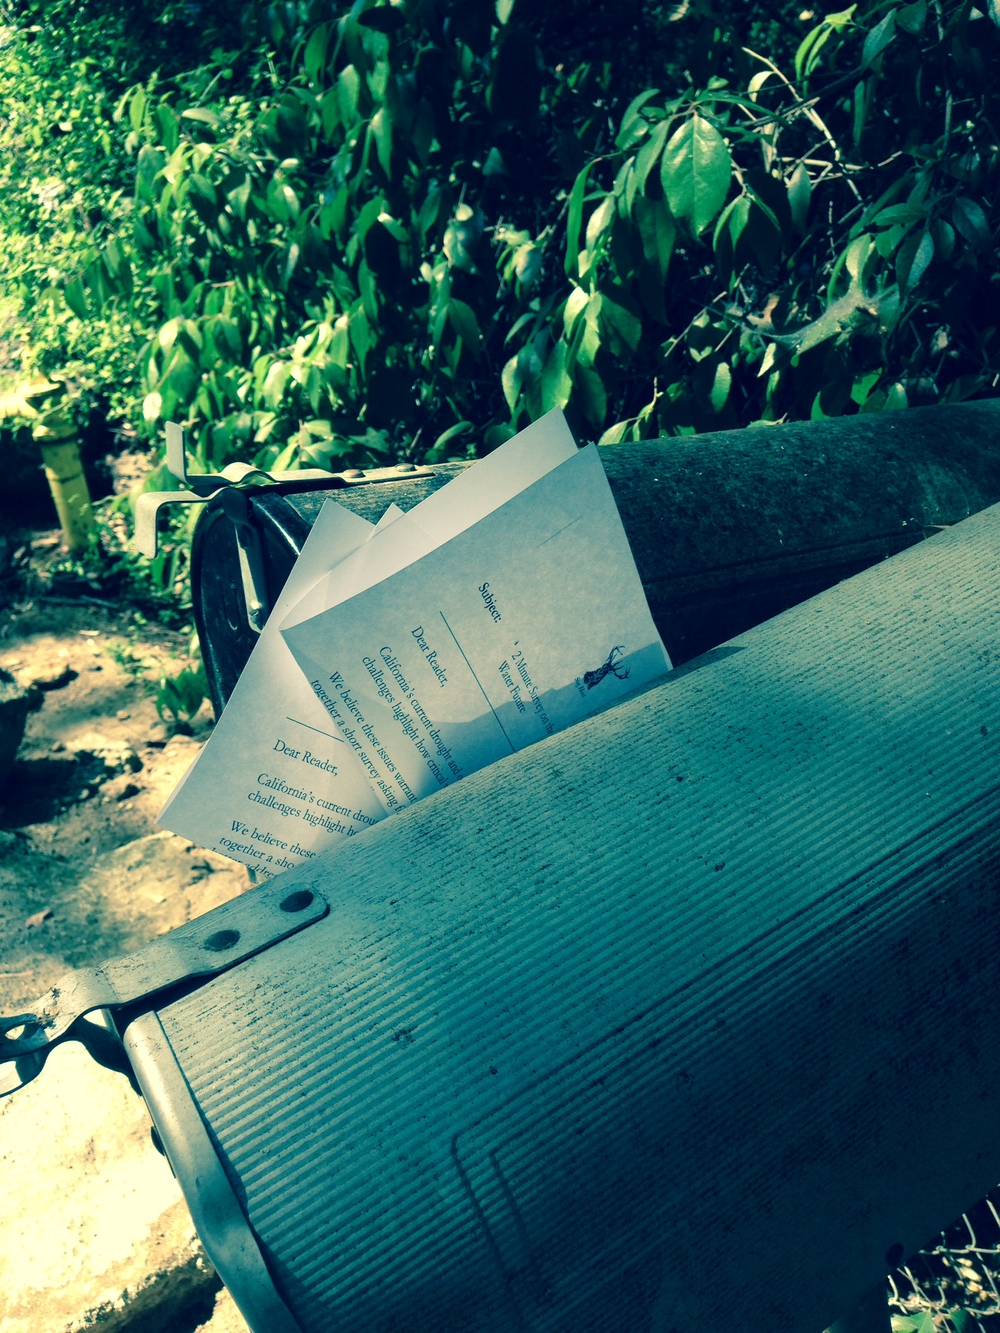 Stag Hunt's by-hand-mail delivery random survey of La Canada residents on local water issues.